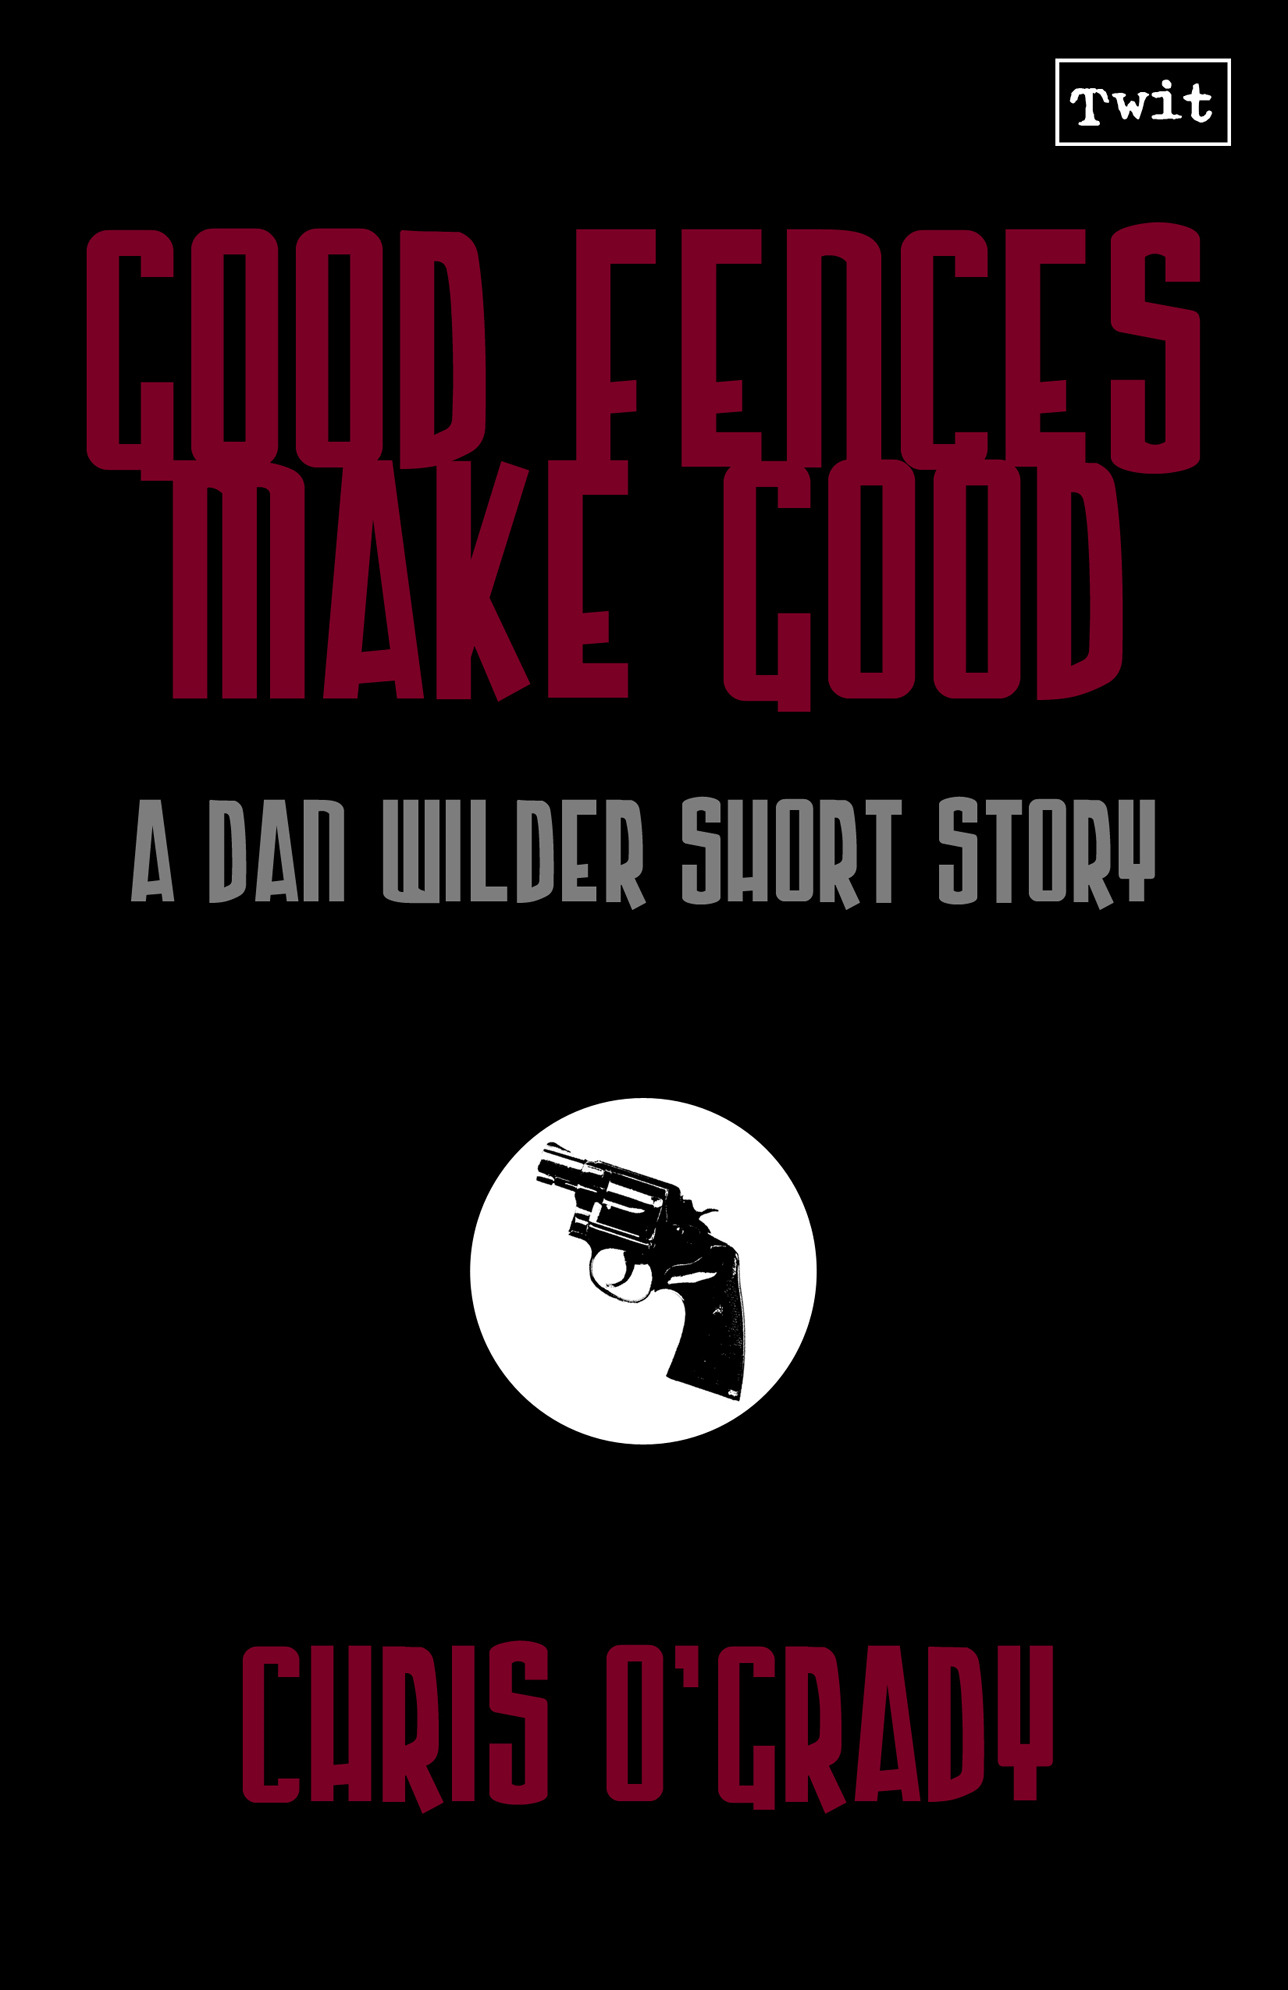 Good Fences Make Good (A Dan Wilder Short Story)